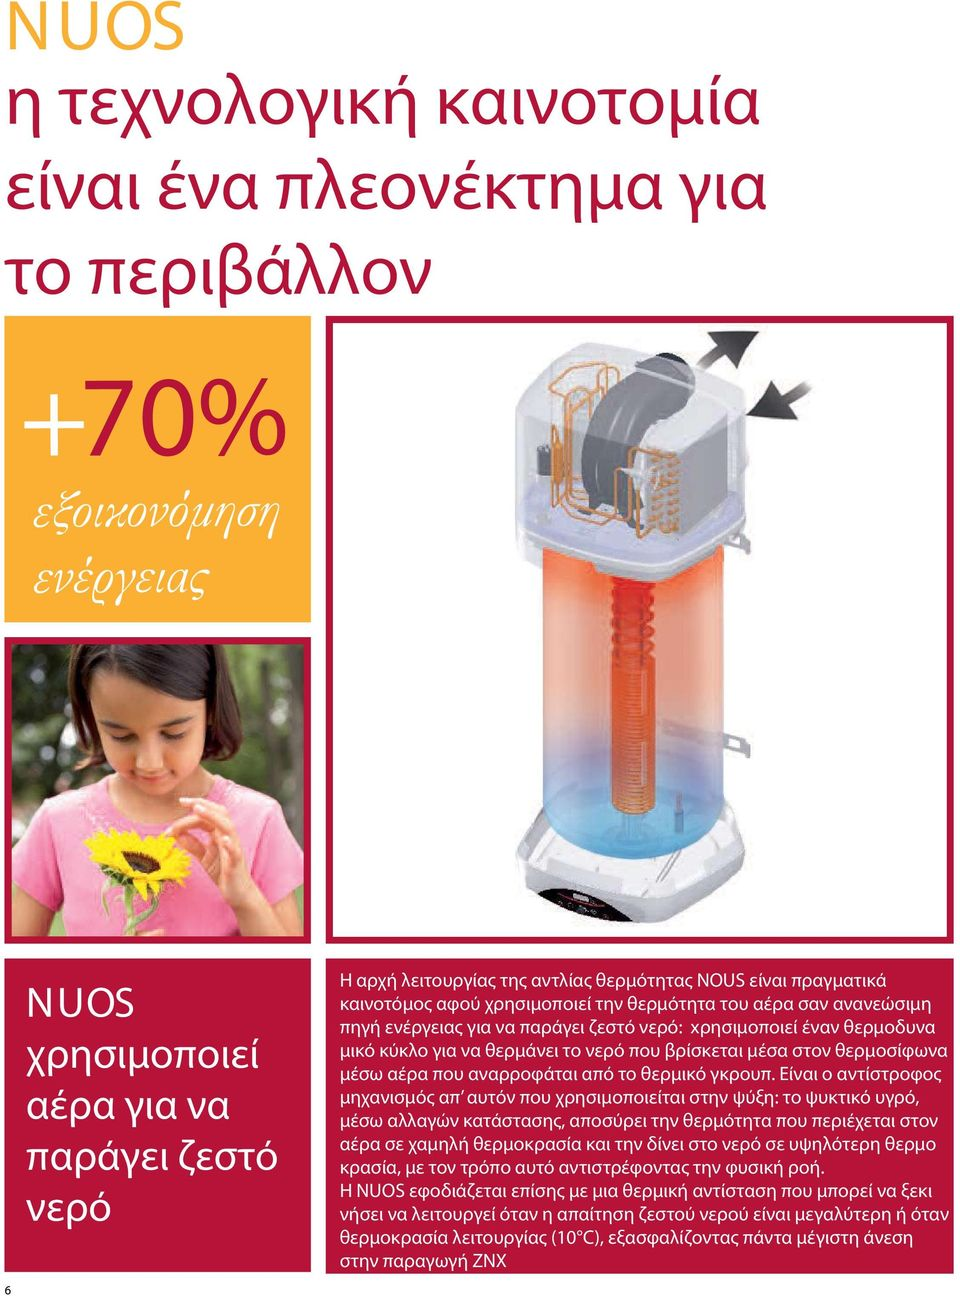 produce σαν ανανεώσιμη hot water: πηγή it uses ενέργειας a thermodynamic για να παράγει cycle to ζεστό heatνερό: the water xρησιμοποιεί contained inside έναν θερμοδυνα the heater μικό through κύκλο